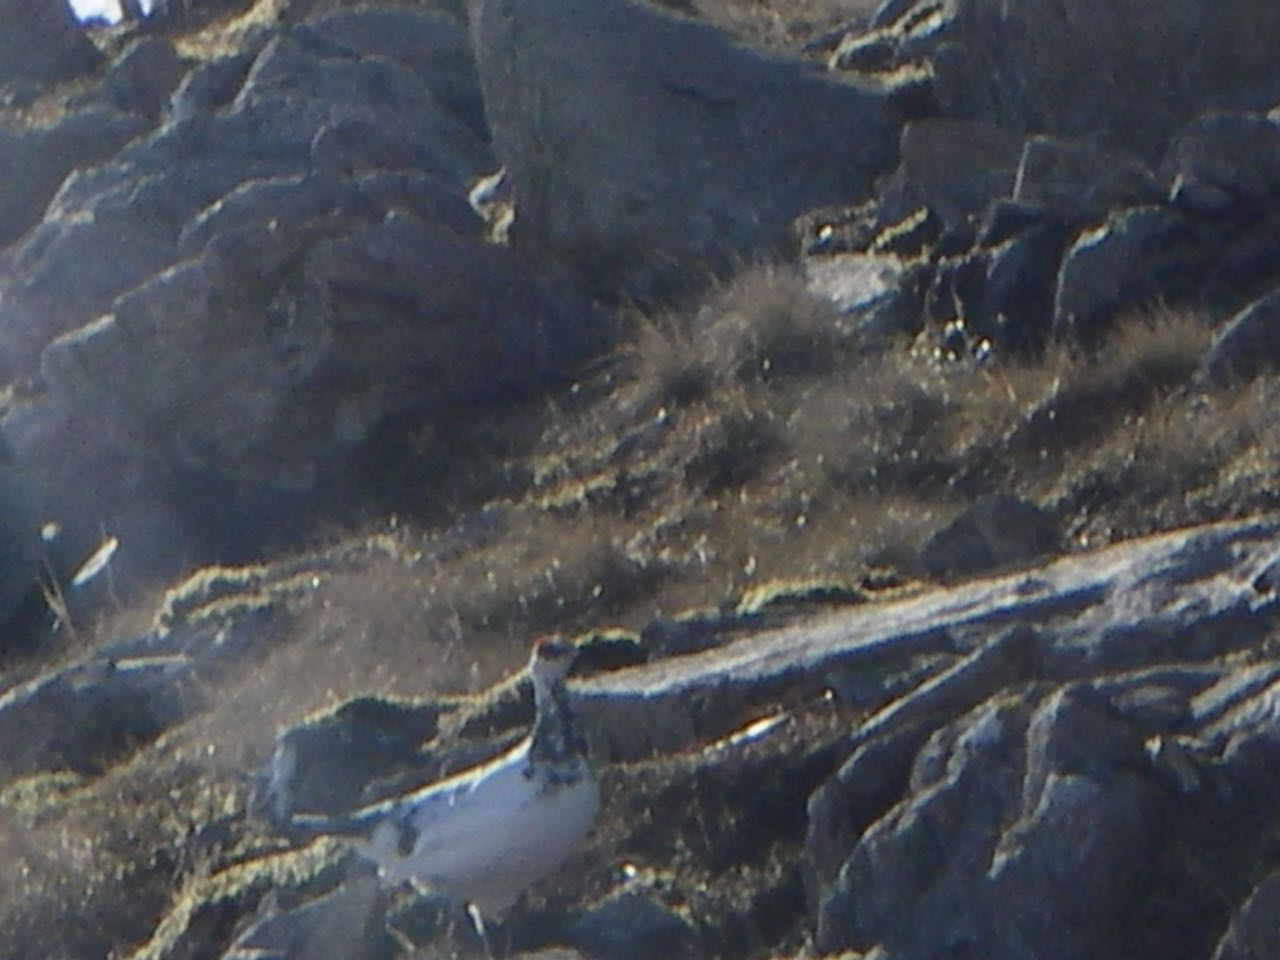 That friendly (and slightly disorientated) ptarmigan